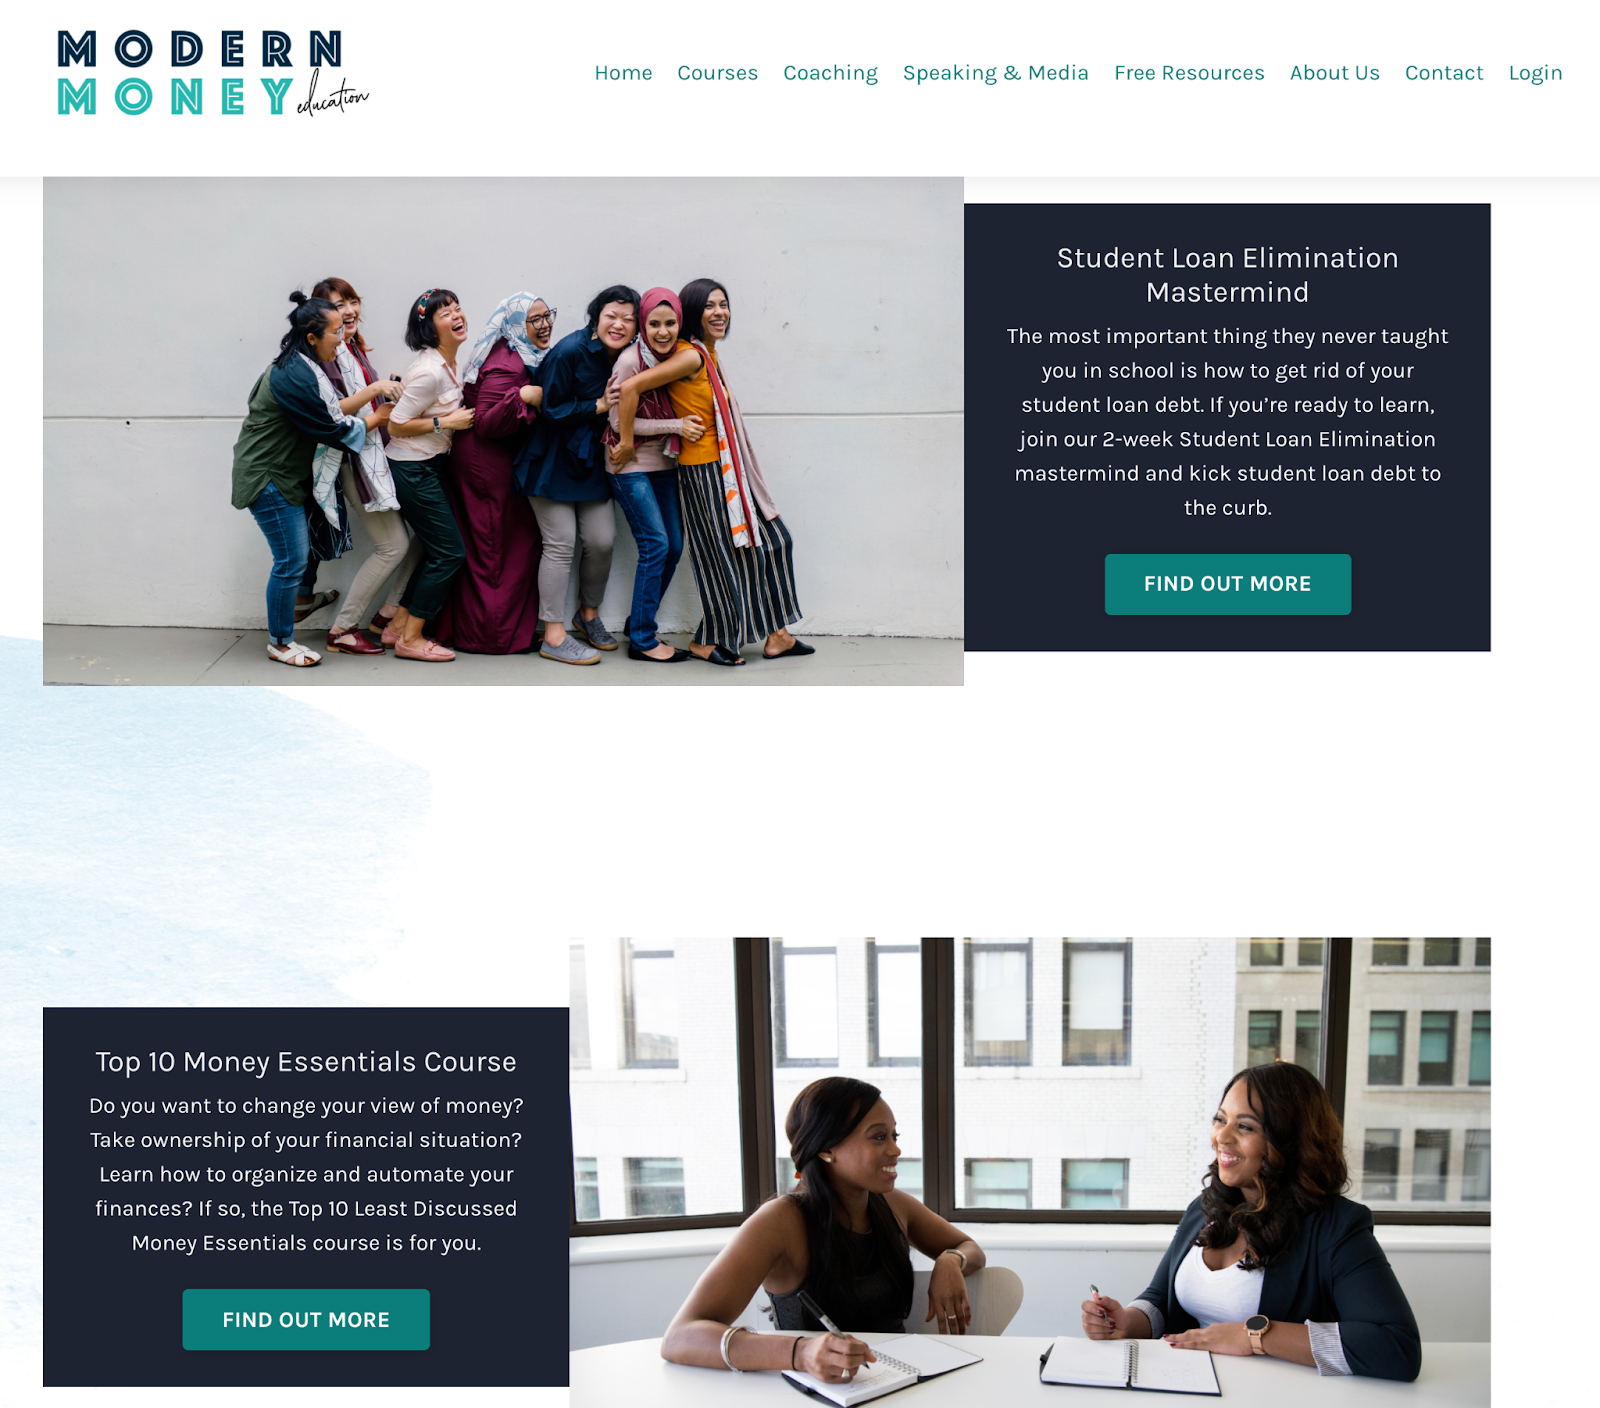 Screenshot of the Modern Money Education website with two course offerings: Student Loan Elimination Mastermind and Top 10 Money Essentials Course, both with photos of smiling women